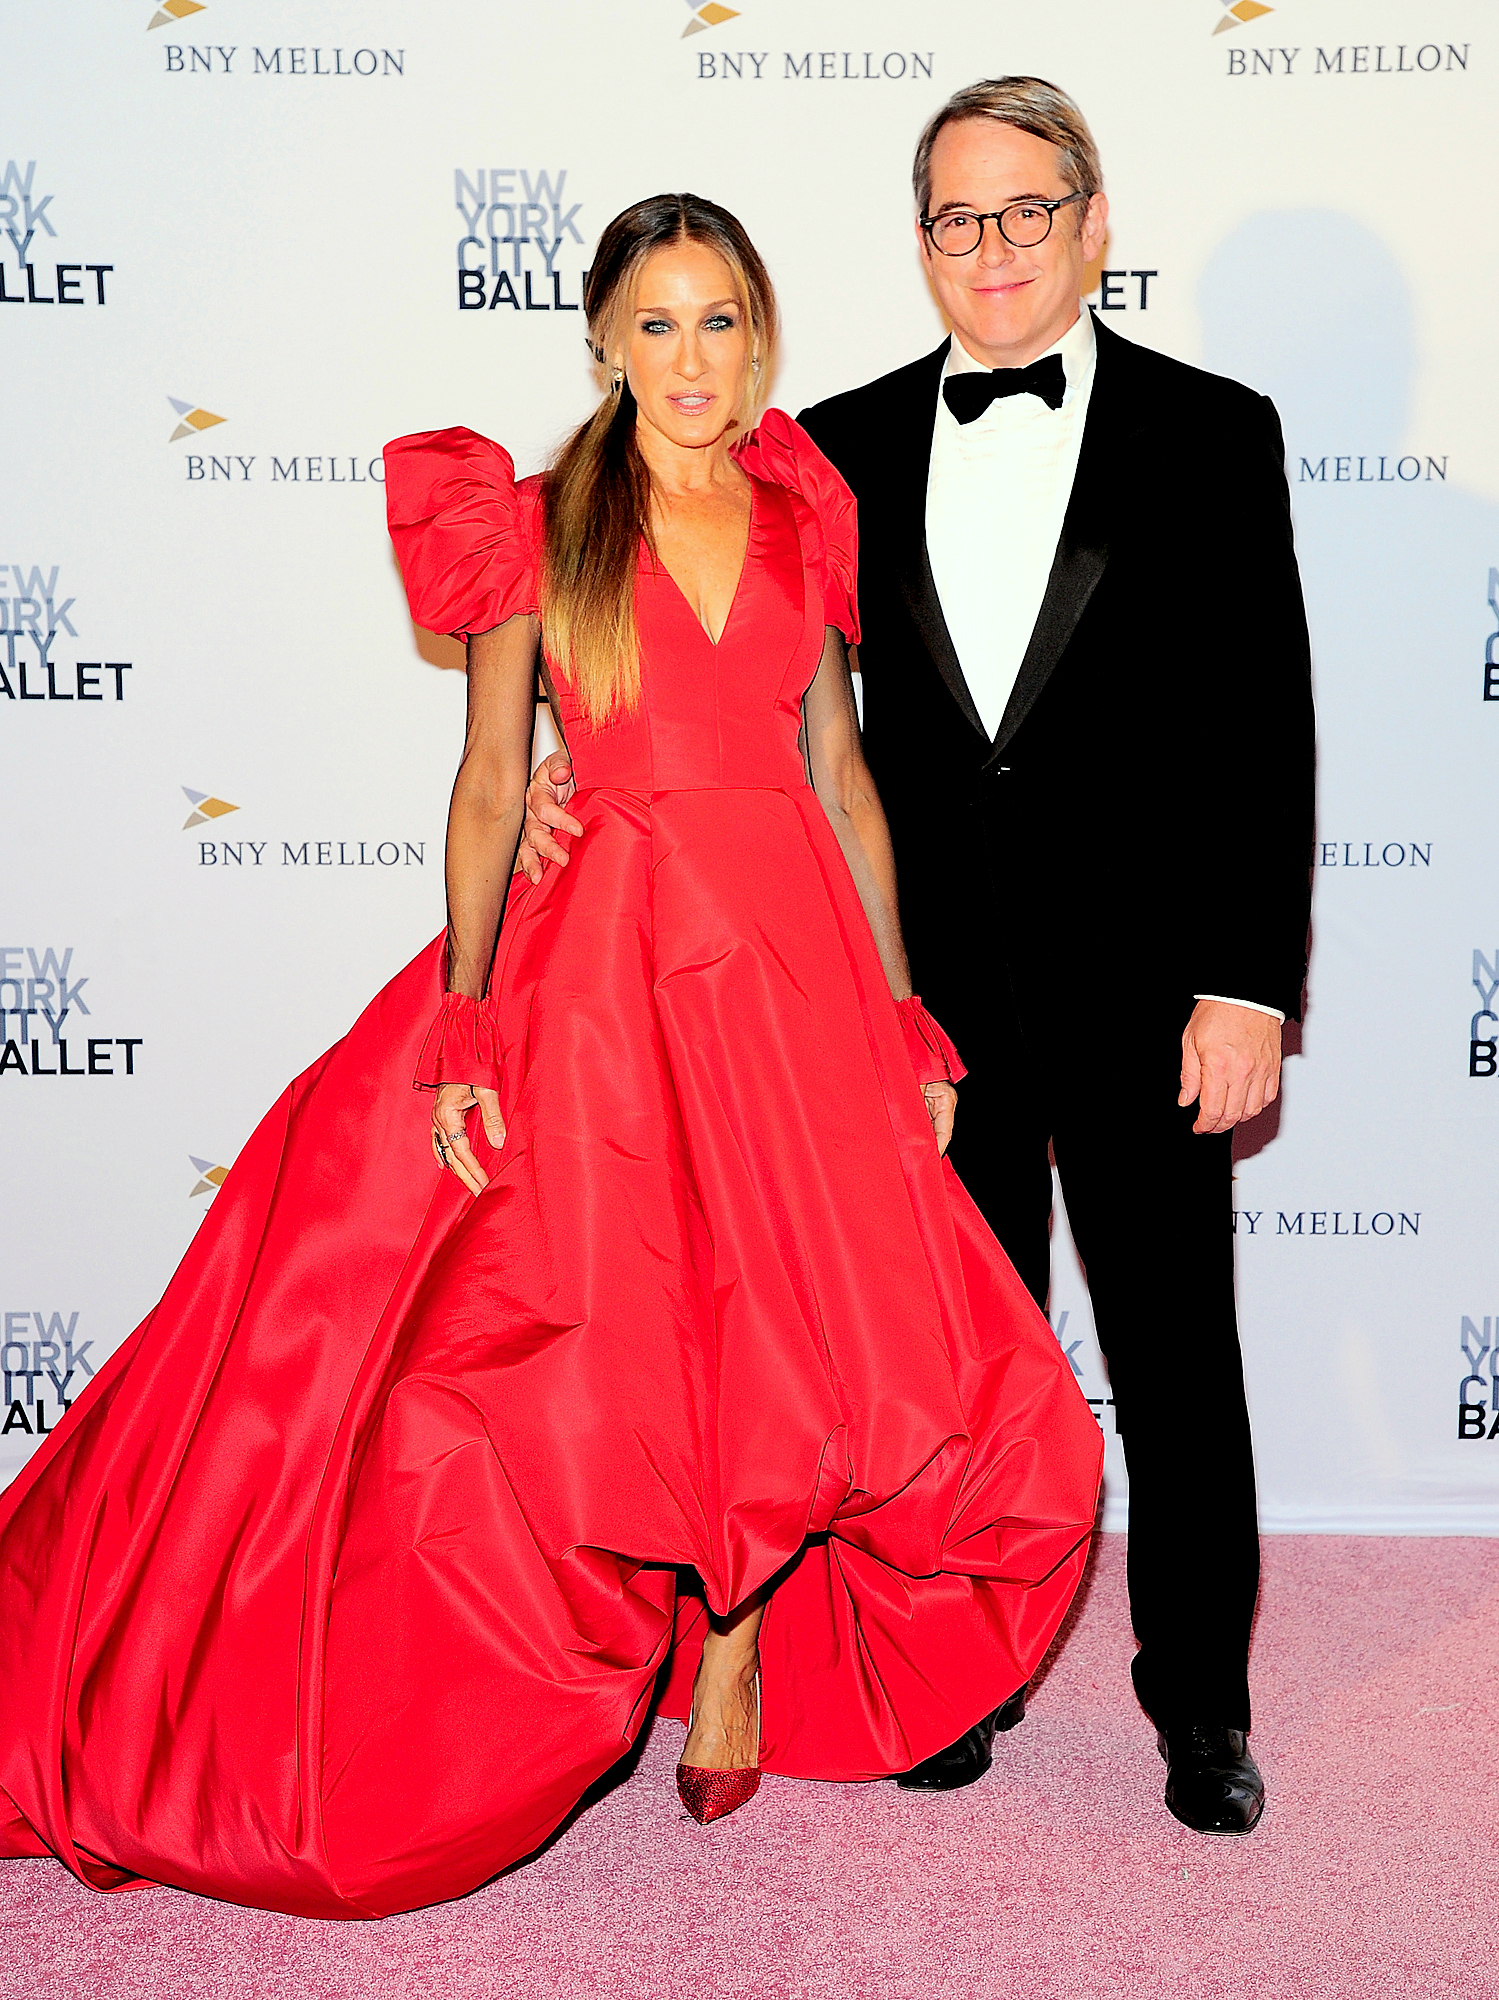 New York City Ballet 2018 Fall Fashion Gala